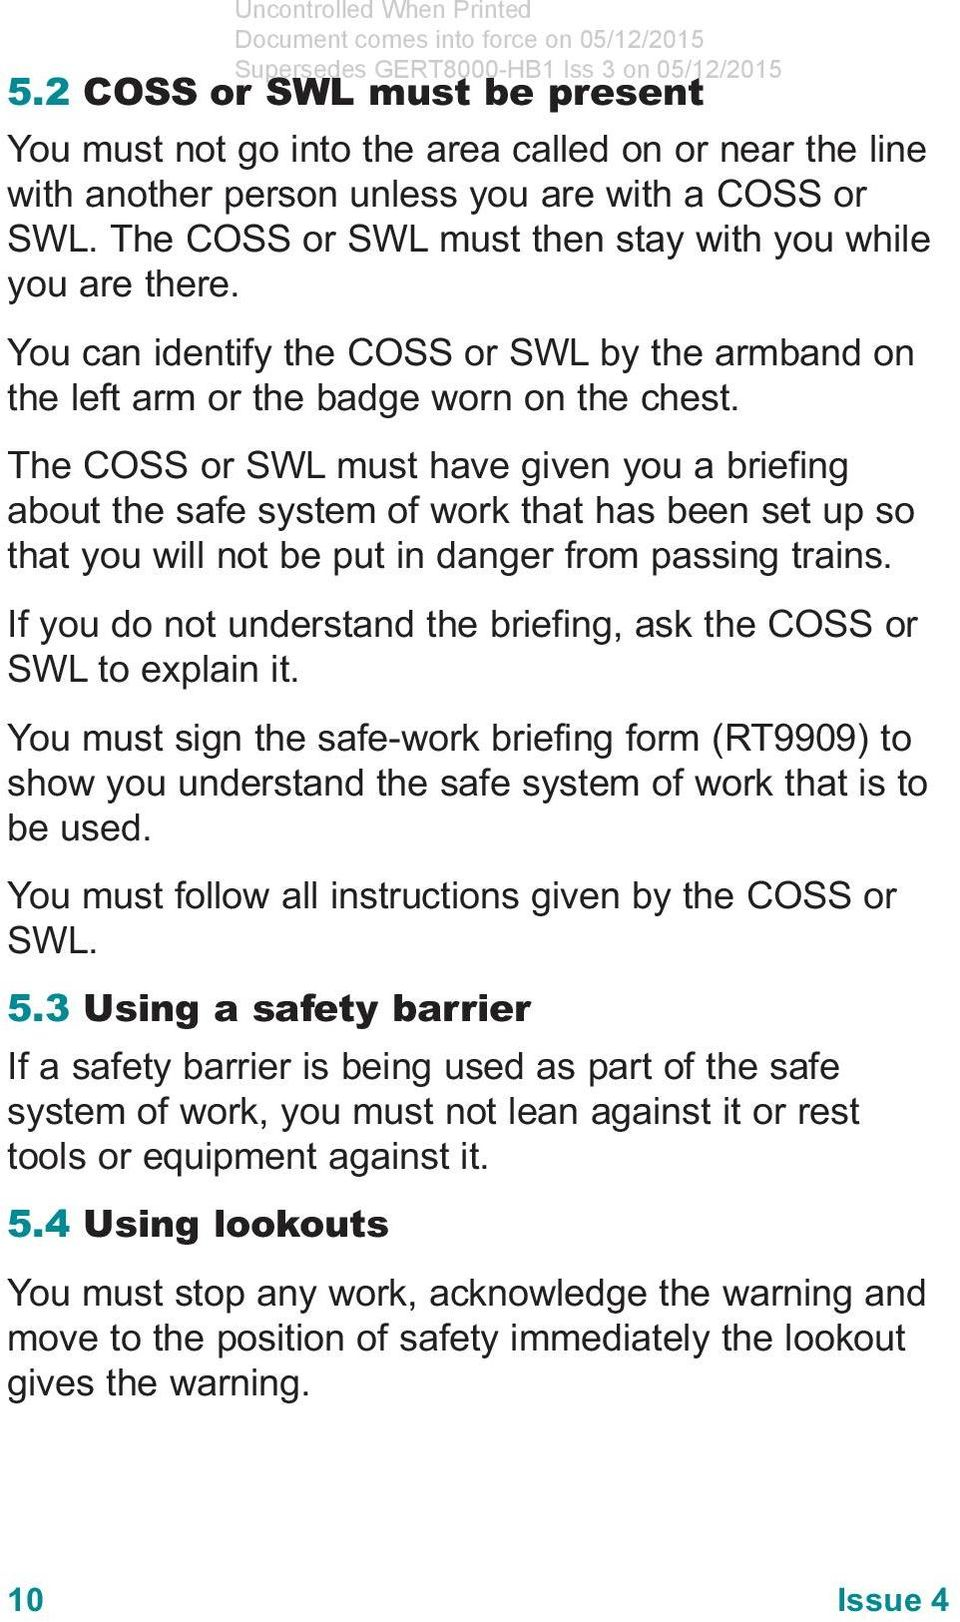 The COSS or SWL must have given you a briefing about the safe system of work that has been set up so that you will not be put in danger from passing trains.